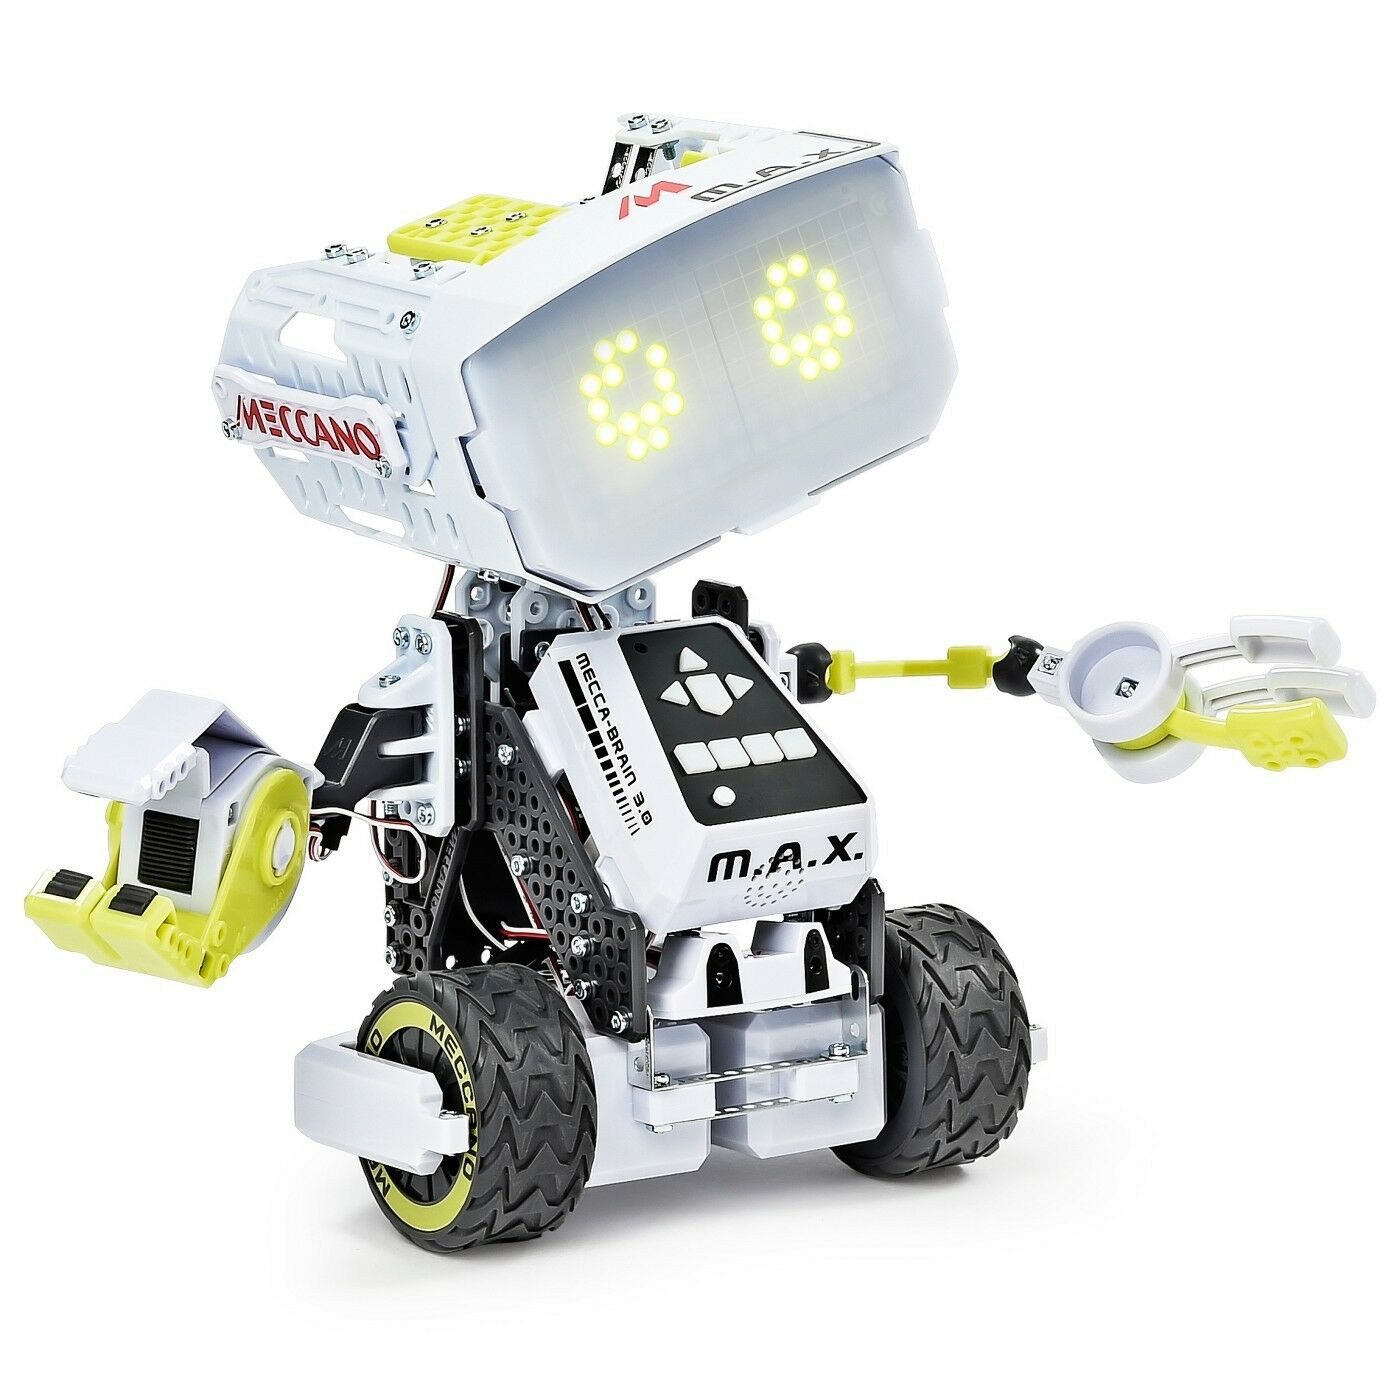 *NEW* Meccano M.A.X Robotic Interactive Toy with Artificial Intelligence  17401